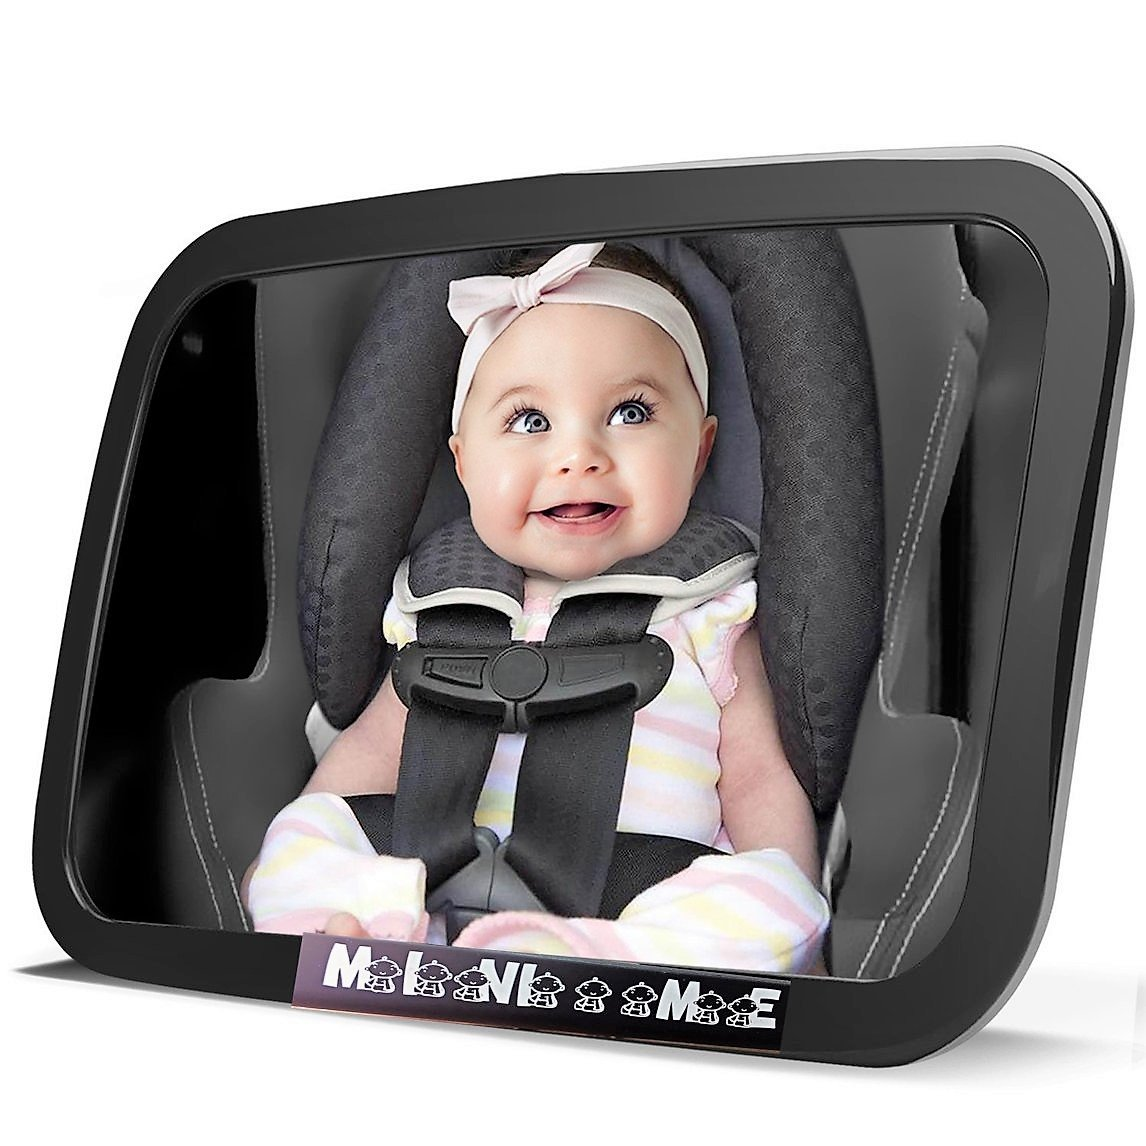 Baby Car Mirror for Back Seat   View Your Child in Rear Facing Car Seat   See Children or Pets in Backseat   X Large   Crash Tested Best Infant Safety Double-Strap Mirror   Wide Angle   Shatterproof